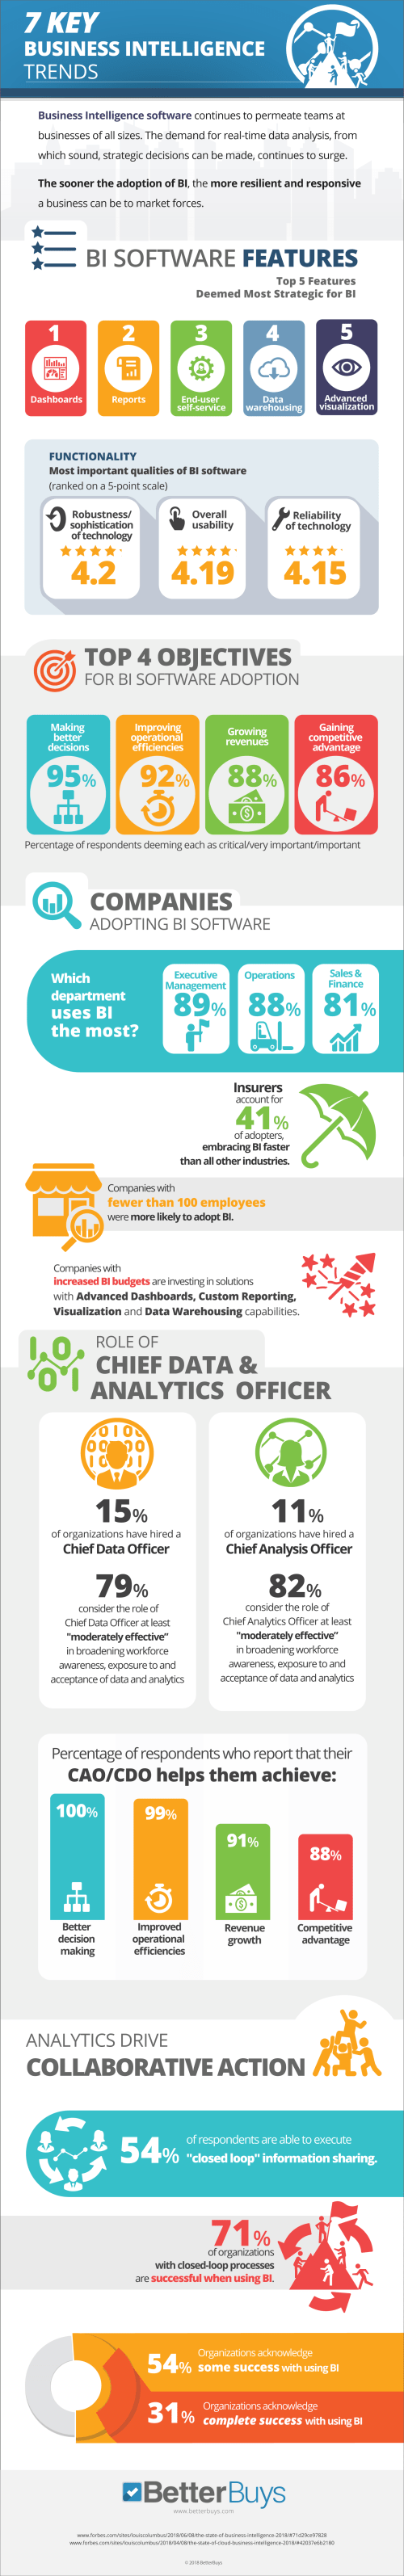 7-Key-Business-Intelligence-trends-inforgraphic